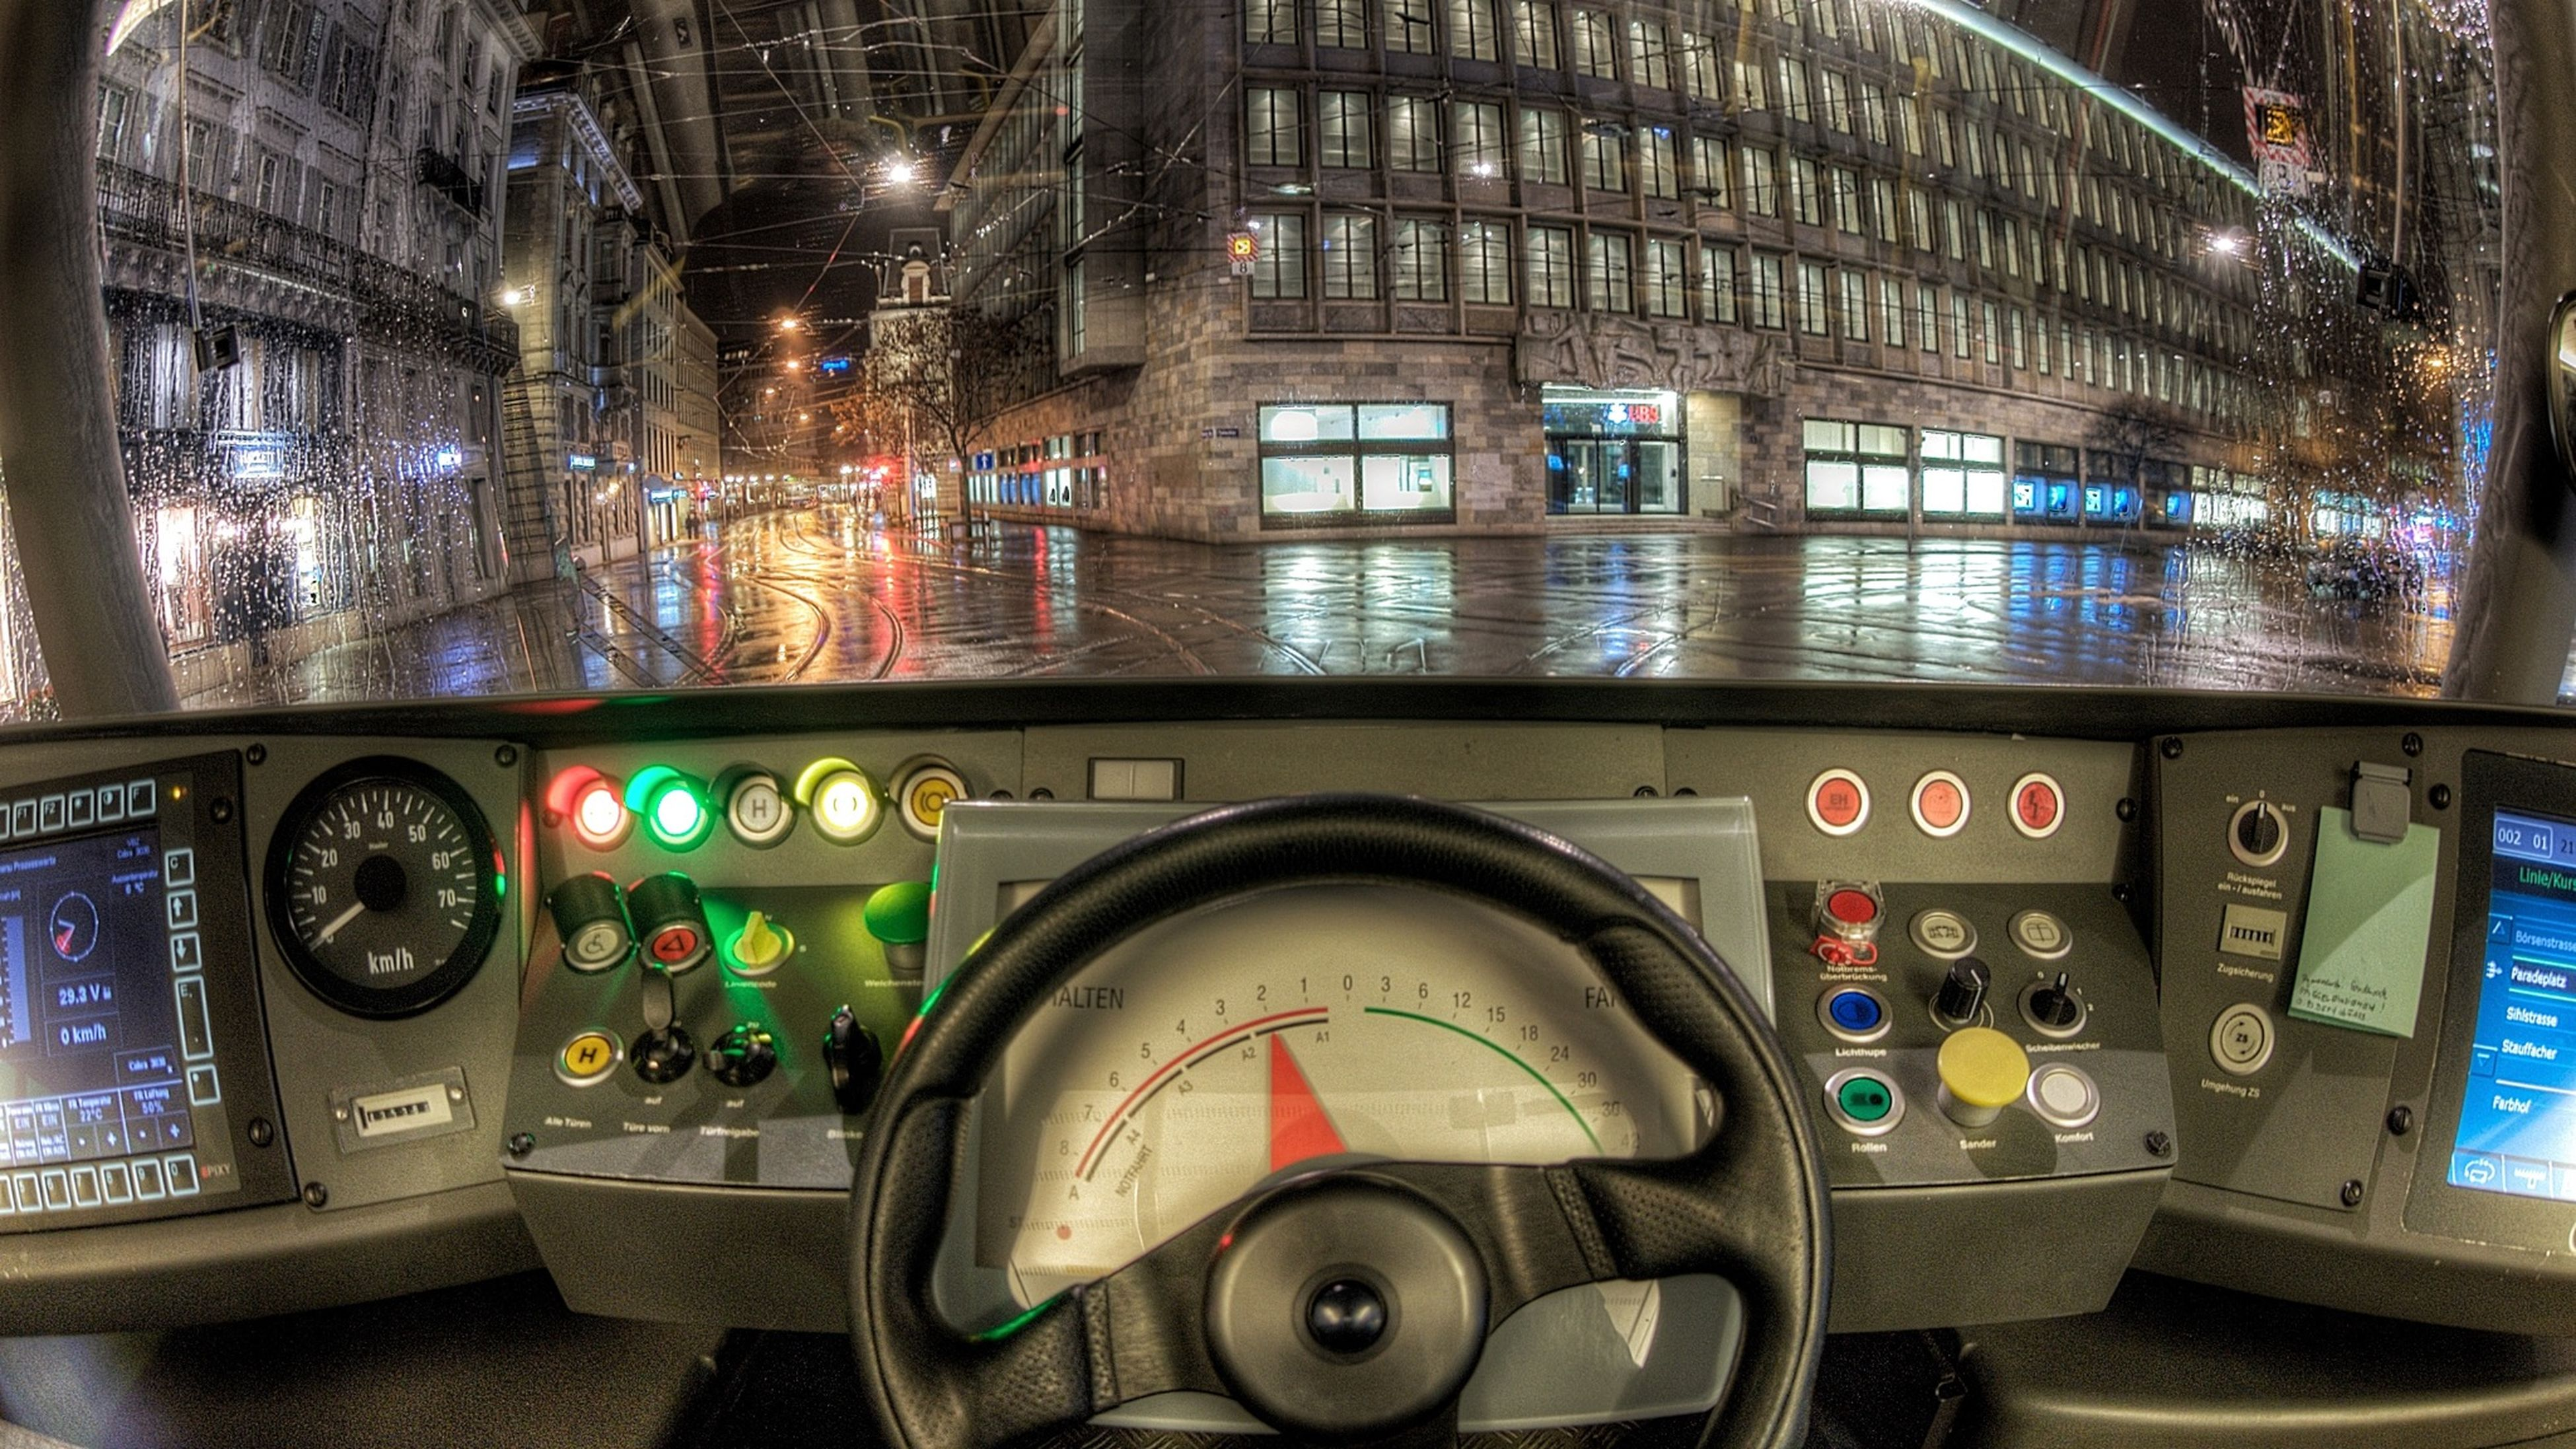 land vehicle, transportation, mode of transport, car, indoors, vehicle interior, retro styled, technology, stationary, old-fashioned, window, illuminated, communication, parked, parking, motorcycle, glass - material, bus, no people, travel